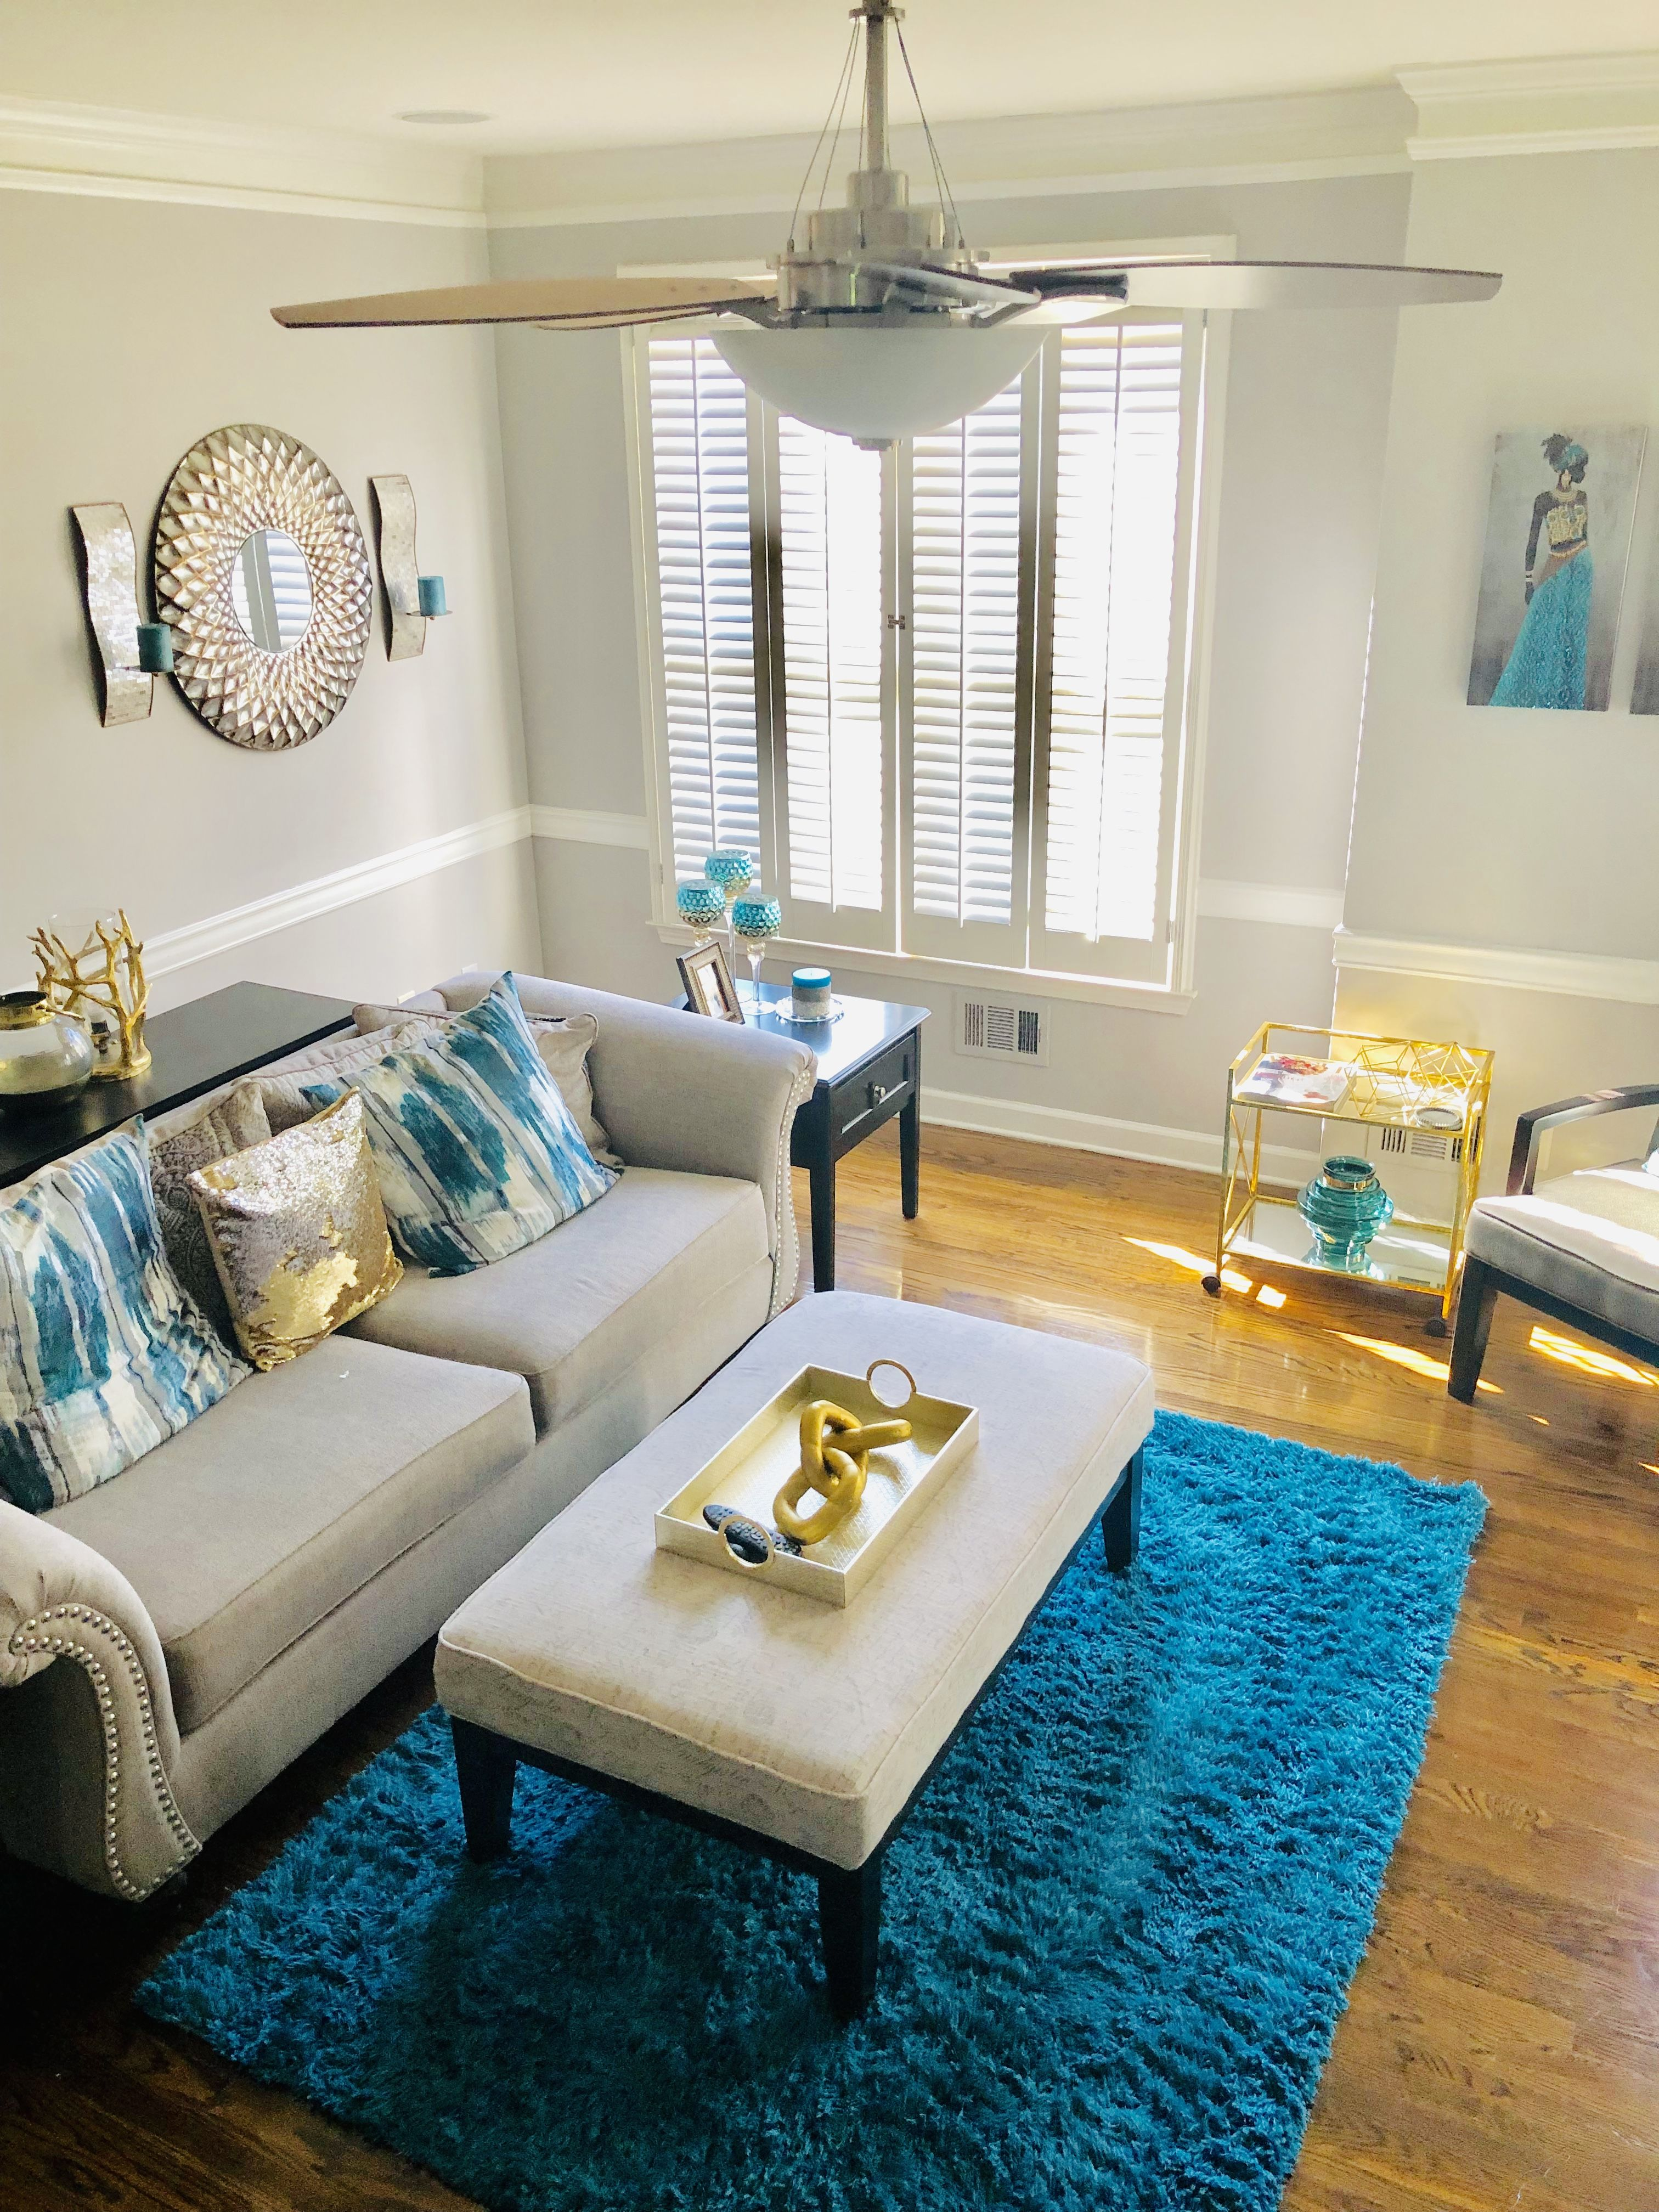 Teal and gray living room with accents of gold | Living ...